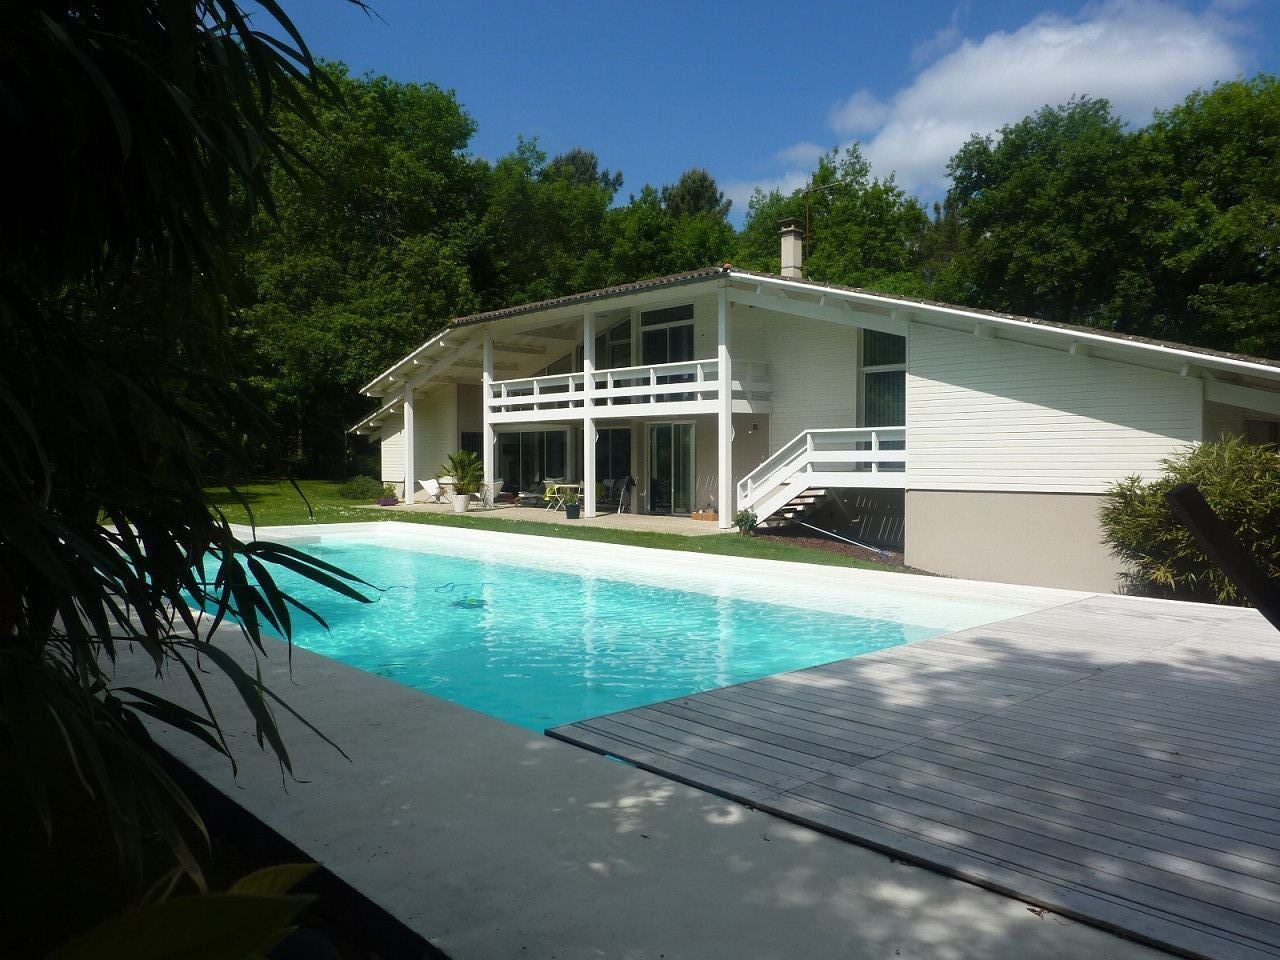 Single Family Home for Sale at BORDEAUX REGION - ON THE WAY TO THE BAY OF ARCACHON -BEAUTIFUL ARCHITECT HOME Bordeaux, Aquitaine, 33000 France